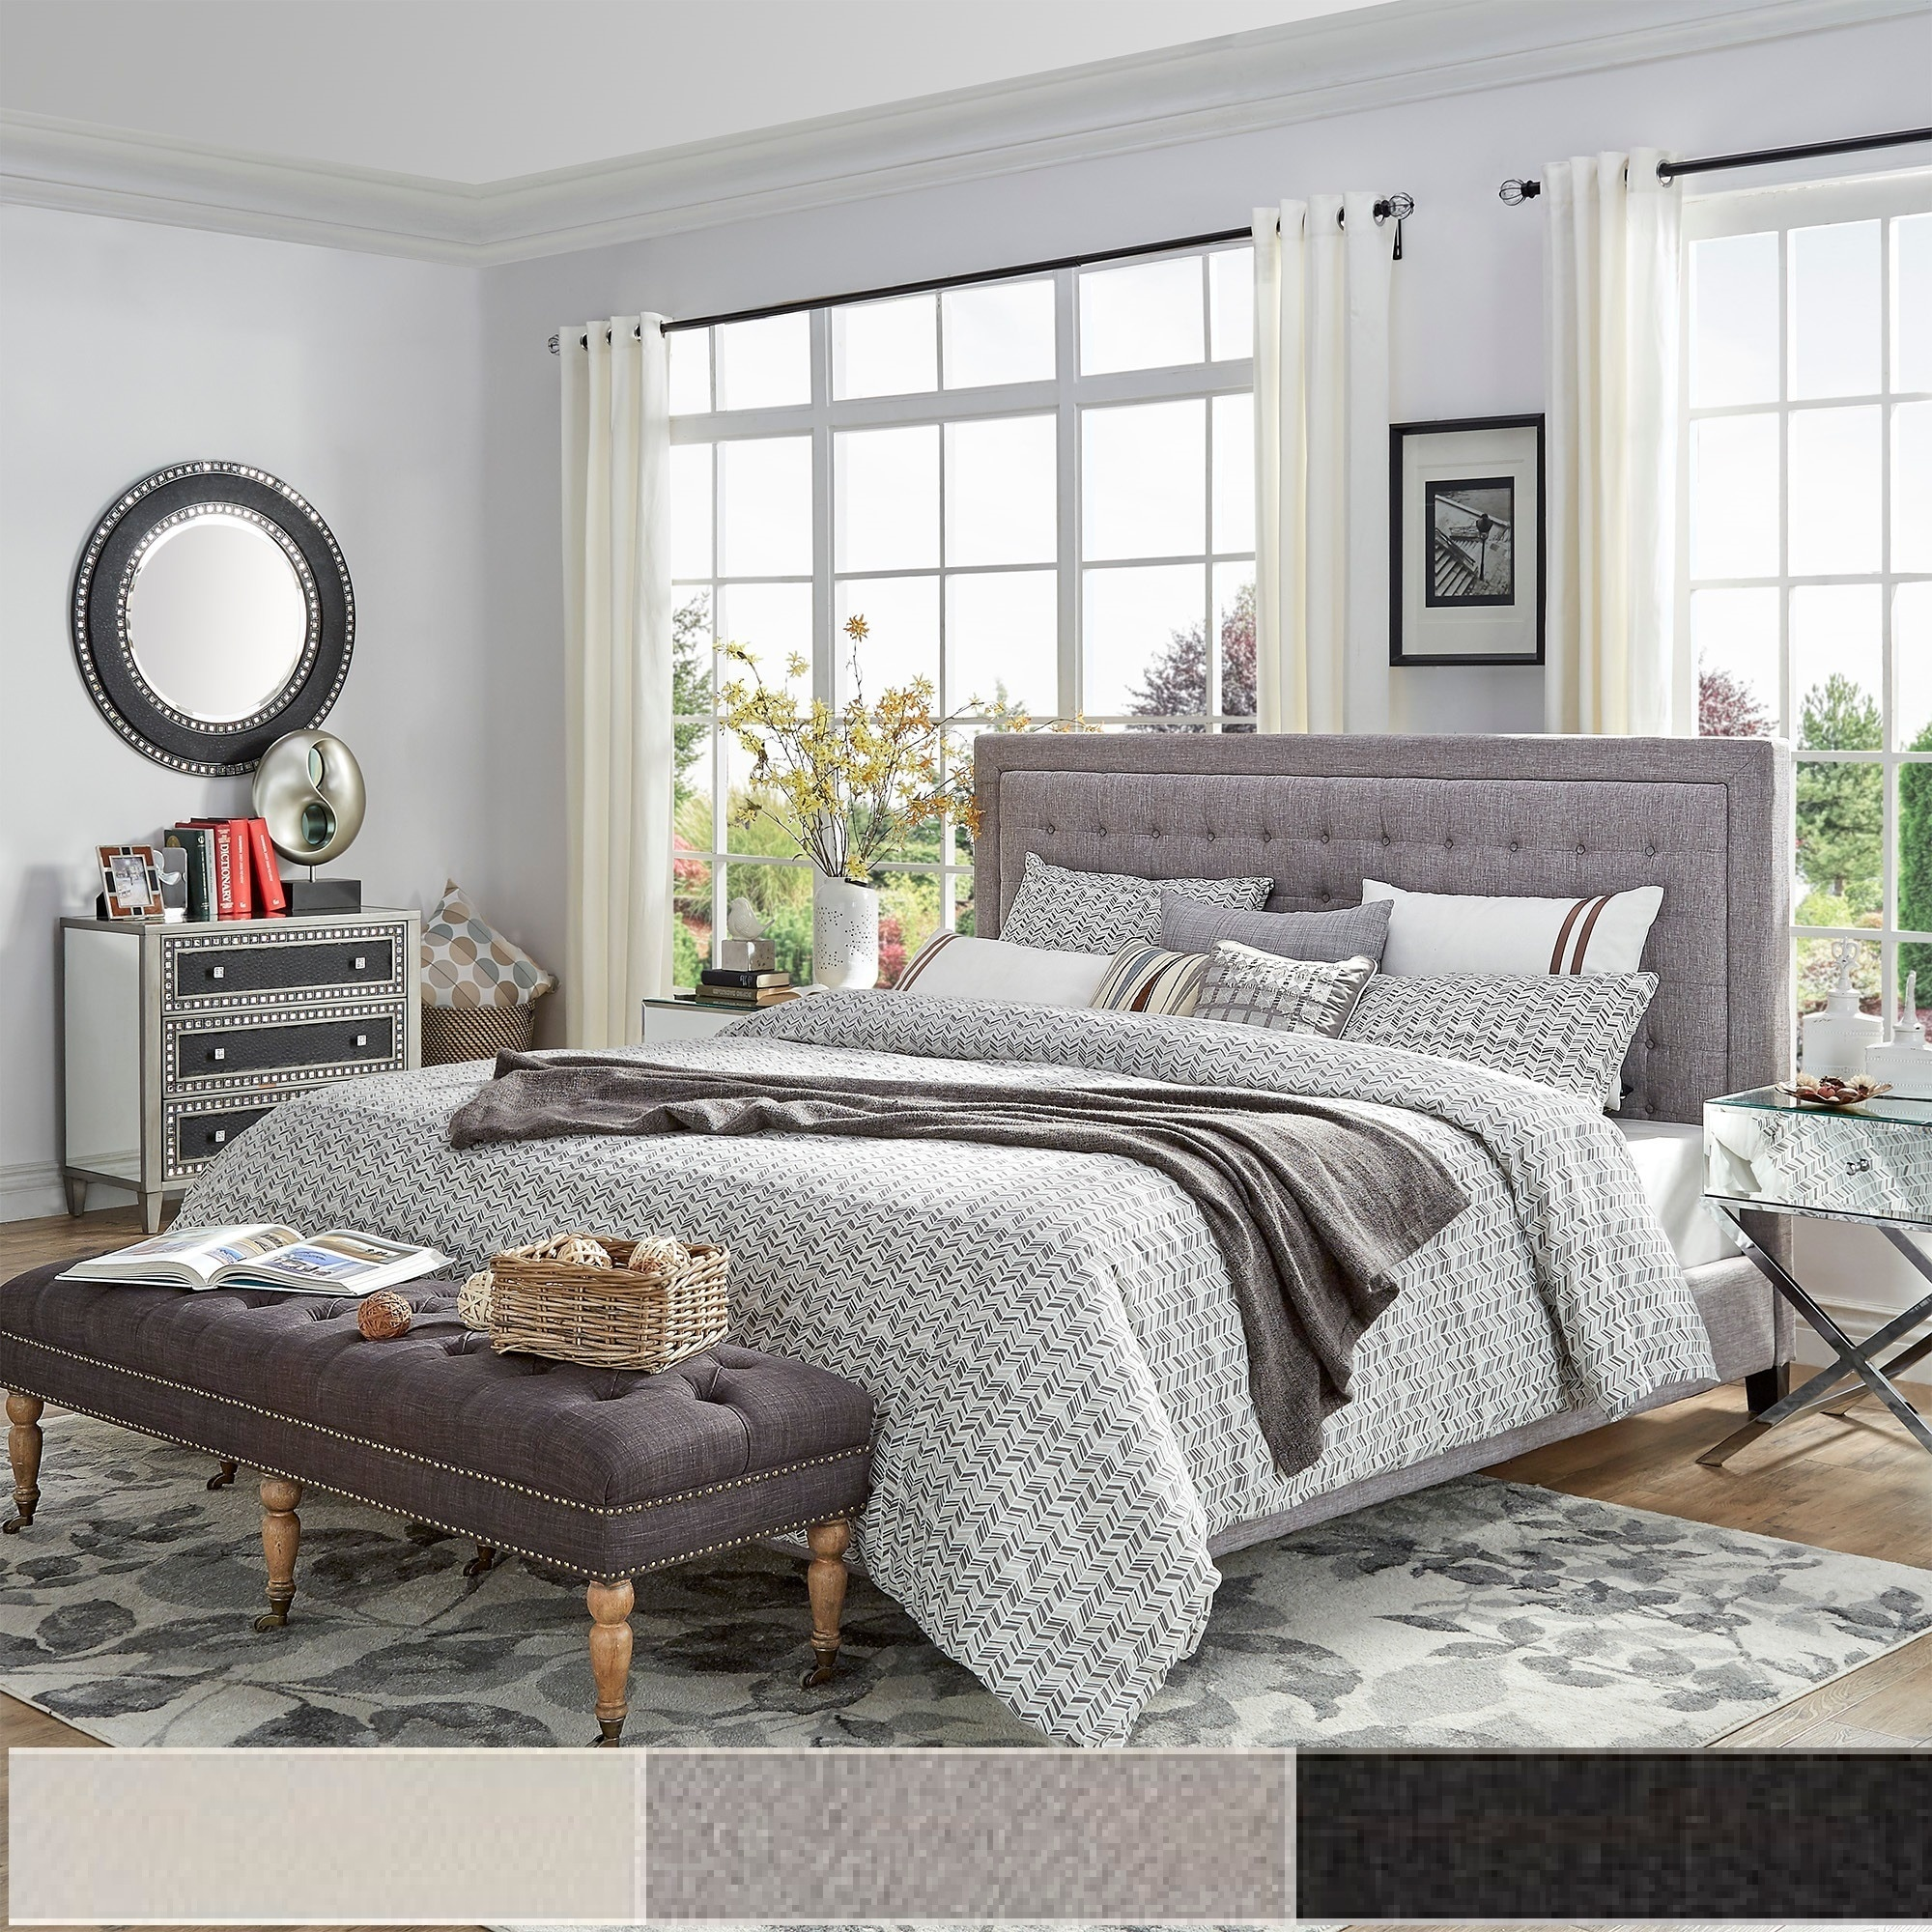 Bellevista Square Button-tufted Upholstered Bed by iNSPIRE Q Bold (Dark Grey Linen - Queen)